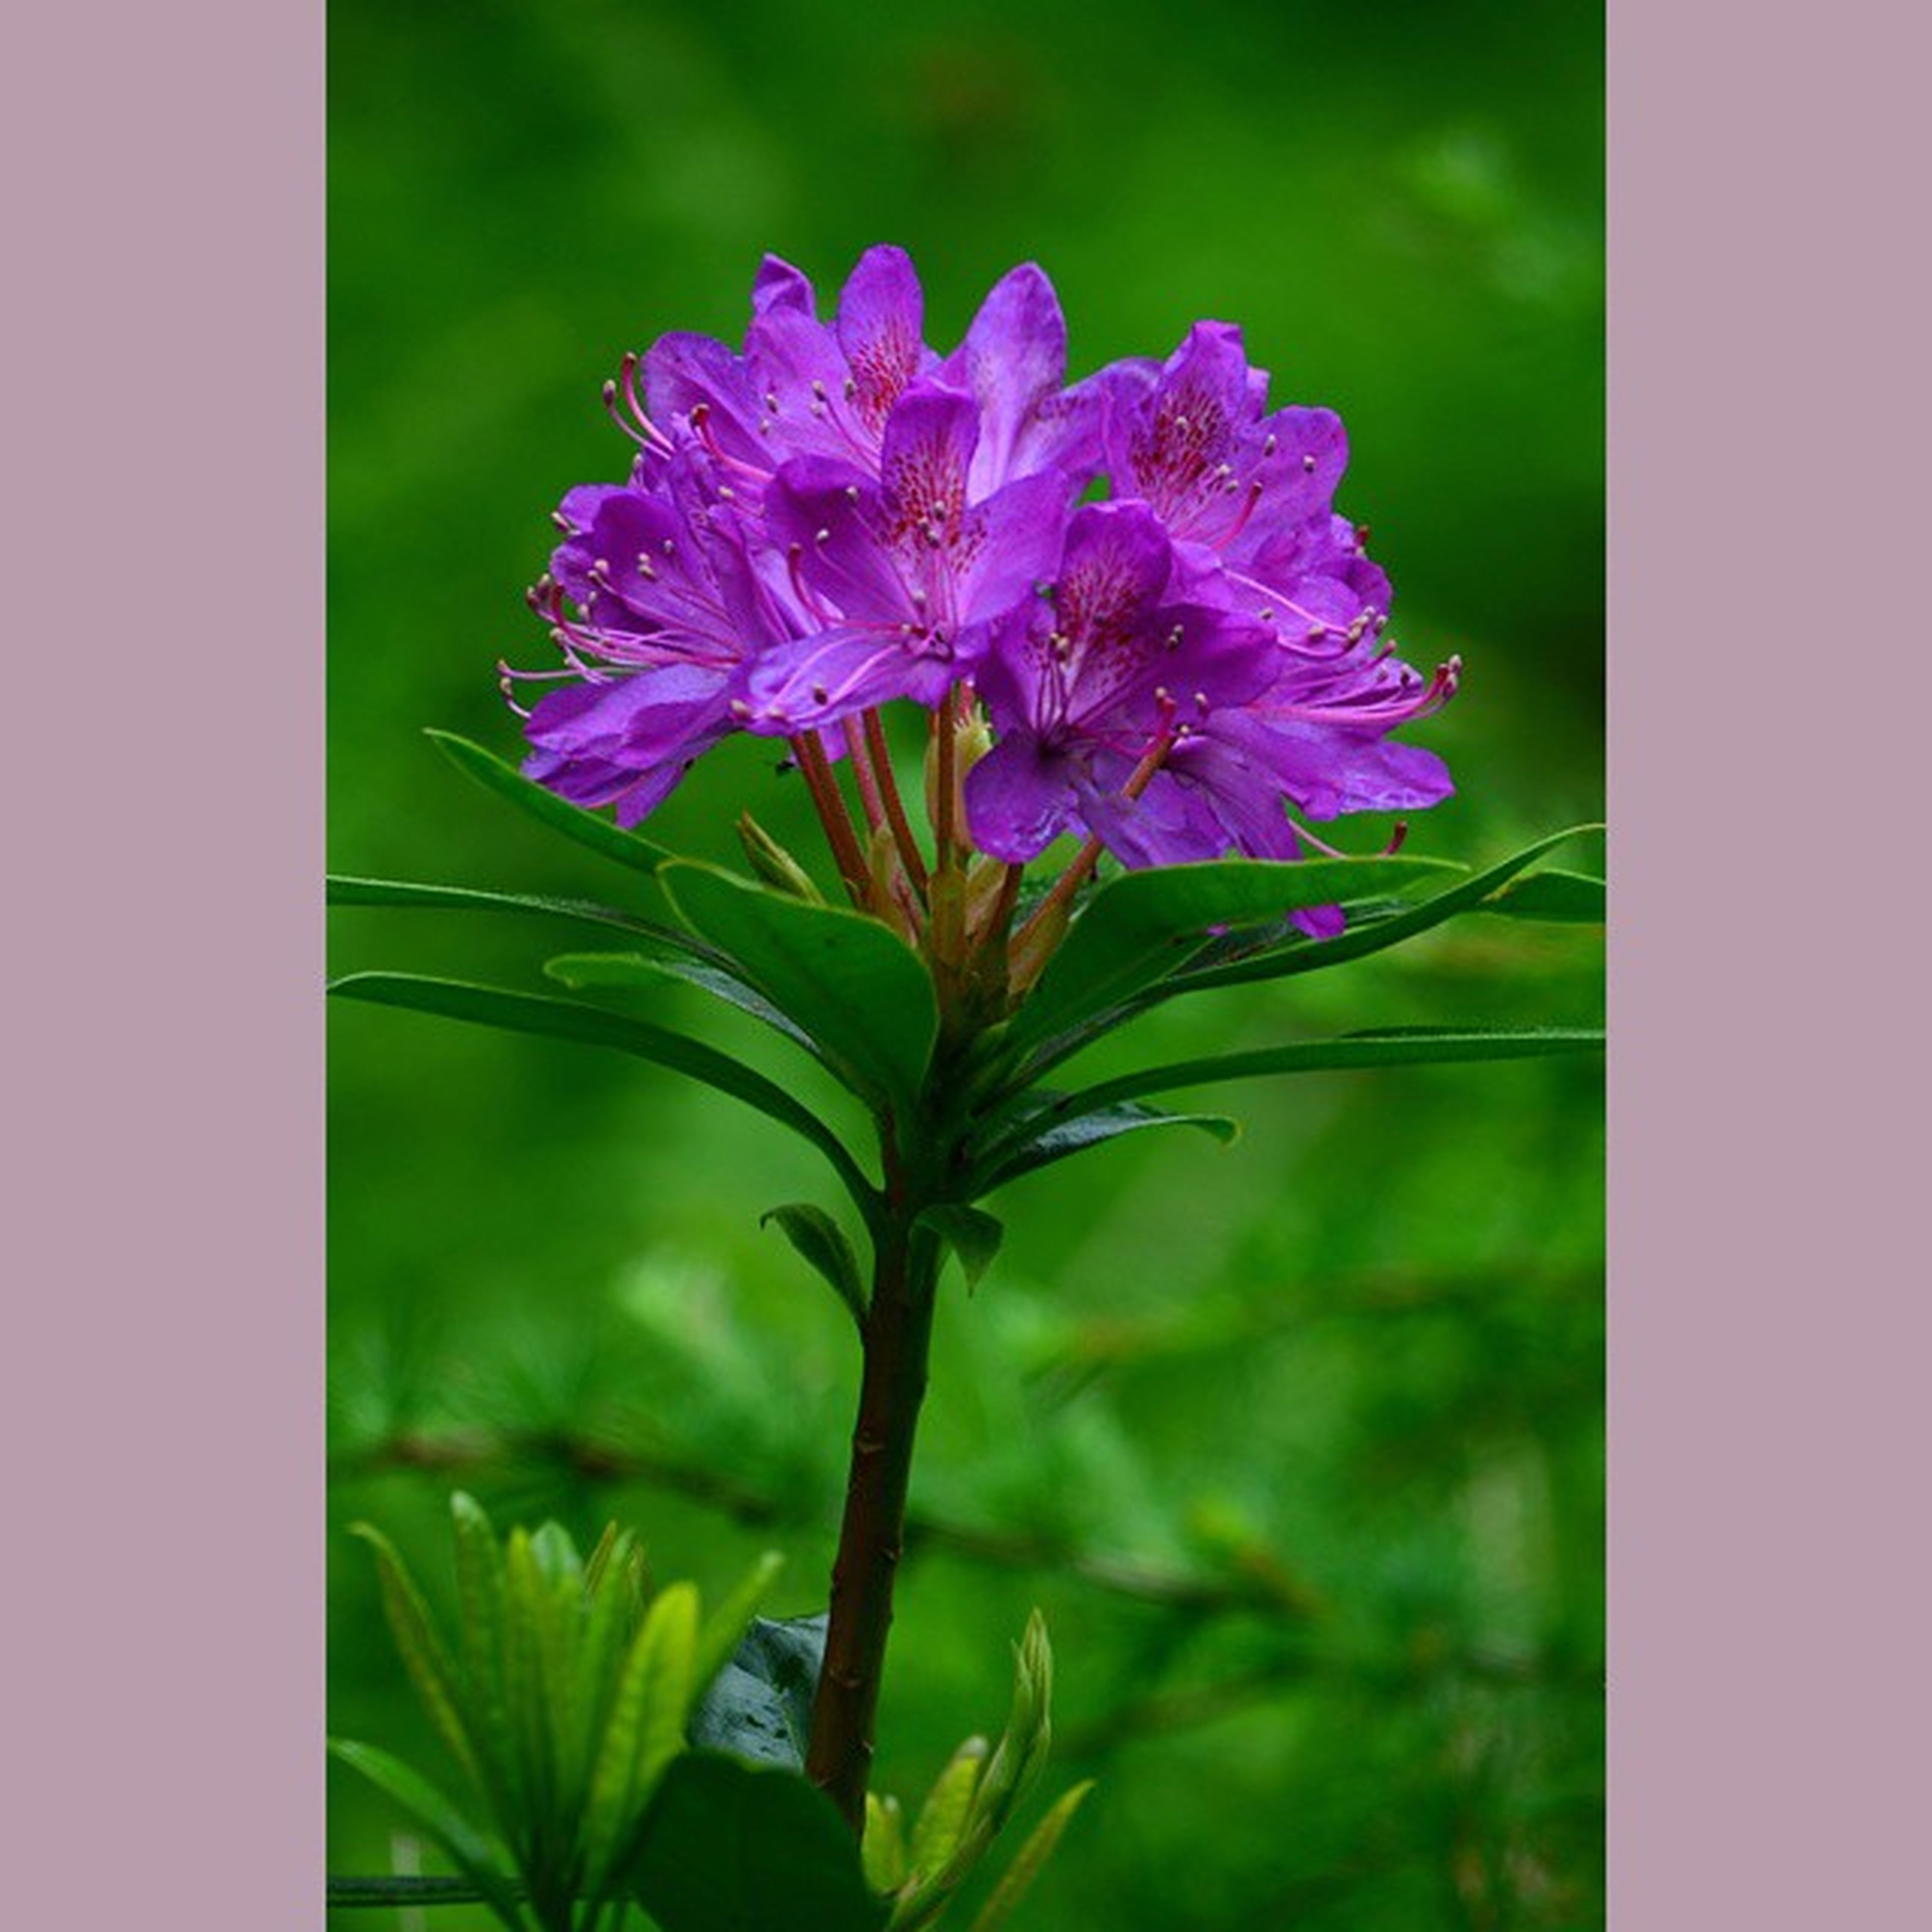 flower, freshness, fragility, growth, purple, beauty in nature, petal, plant, leaf, flower head, stem, nature, close-up, blooming, focus on foreground, pink color, green color, in bloom, day, no people